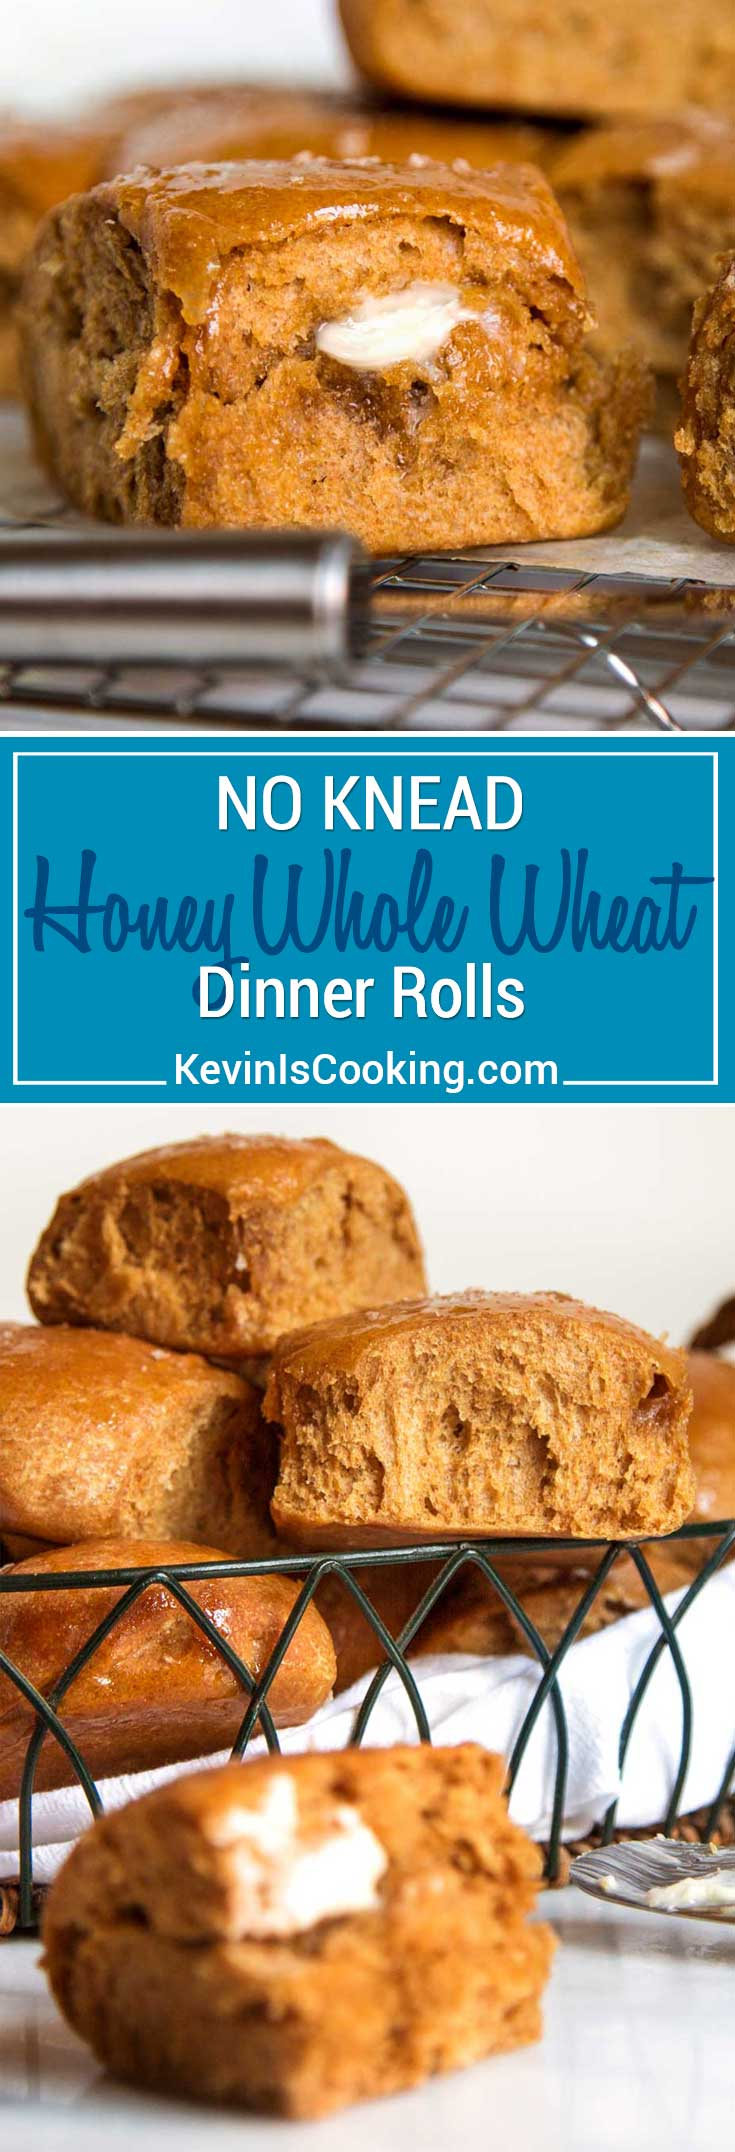 What I love about these light and airy No Knead Honey Whole Wheat Dinner Rolls is there's no mixer required and the honey and wheat flavor is a nice change from the regular white bread version. Grab a bowl and spoon and let's get to it, you have guests coming for dinner!